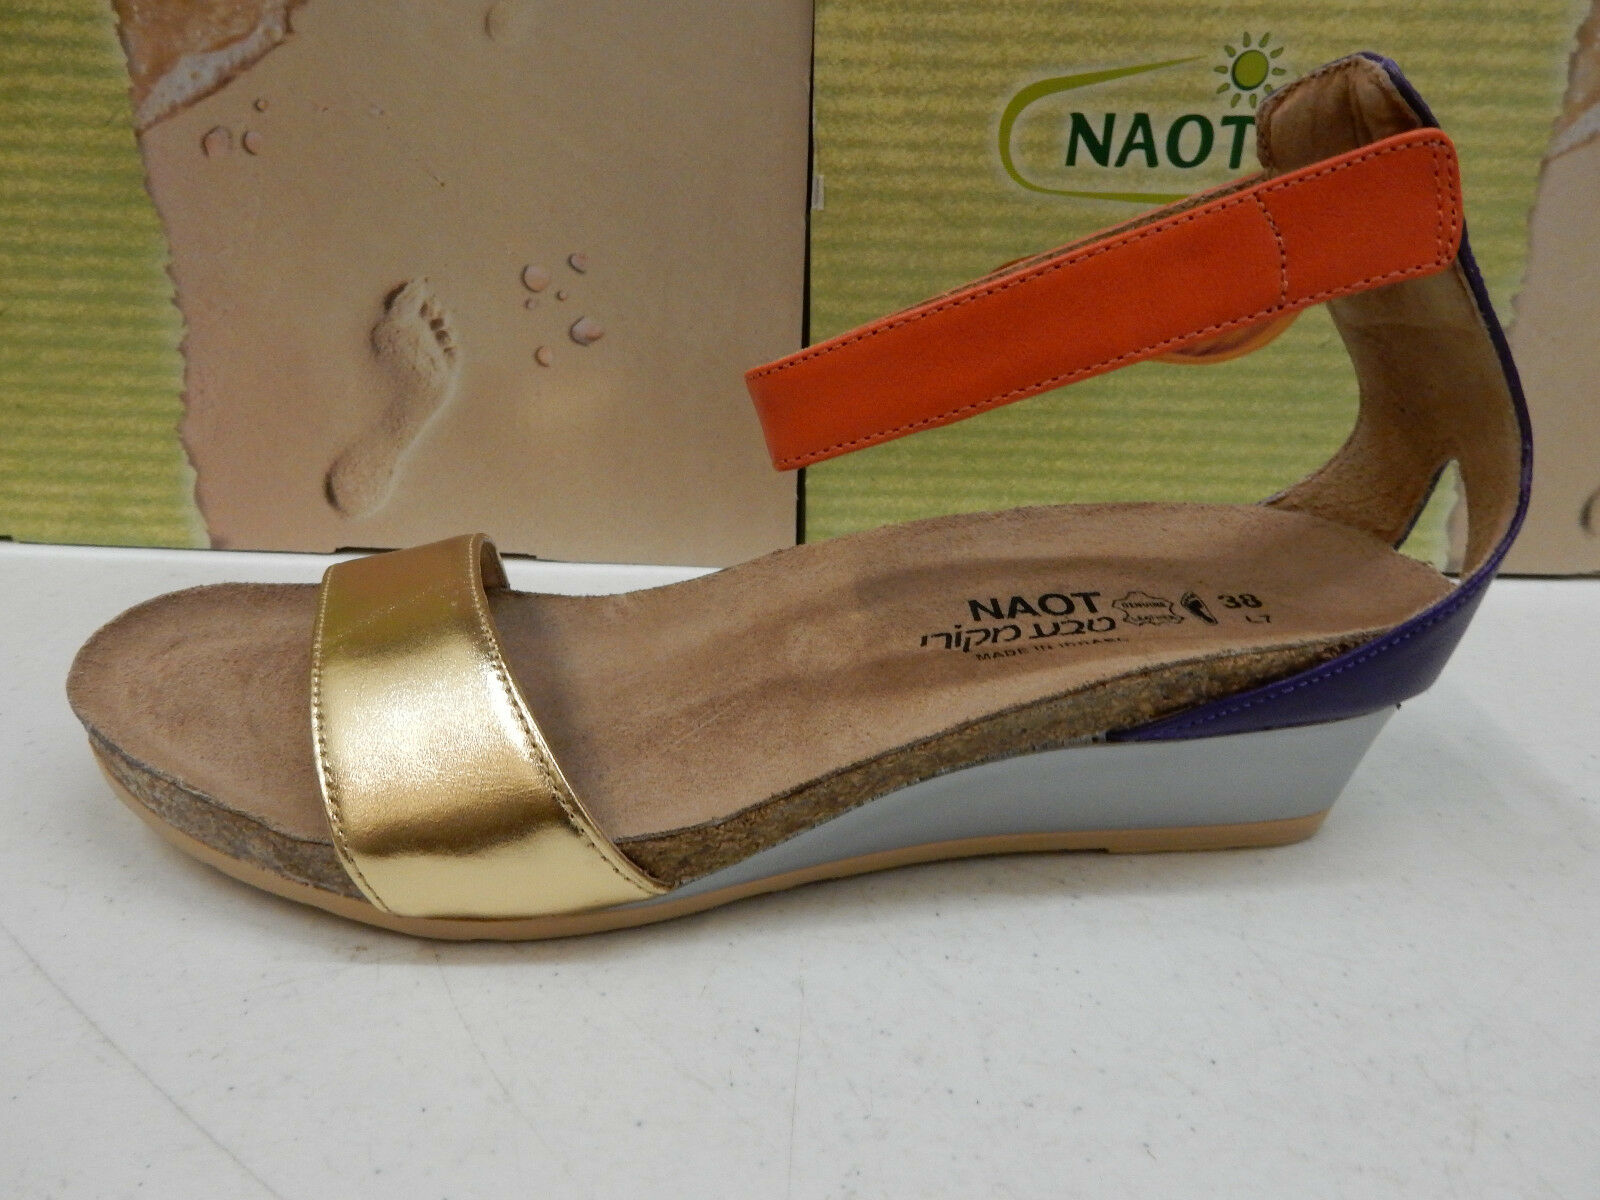 NAOT Donna SANDALS PIXIE GOLD PURPLE ORANGE SIZE EU 40